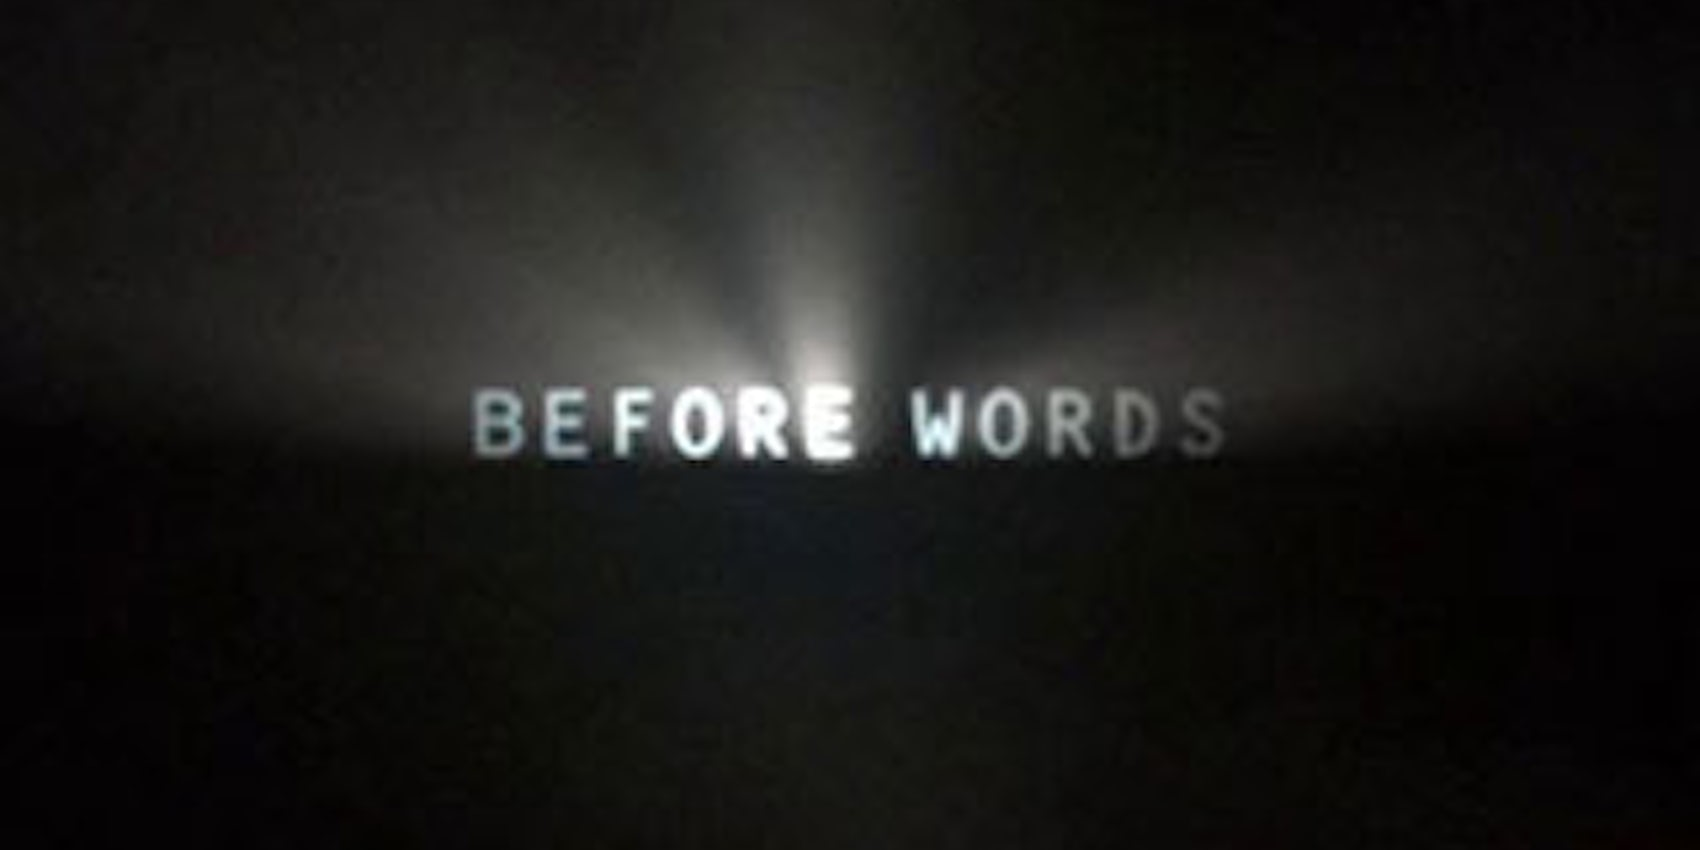 Beforewords thumb